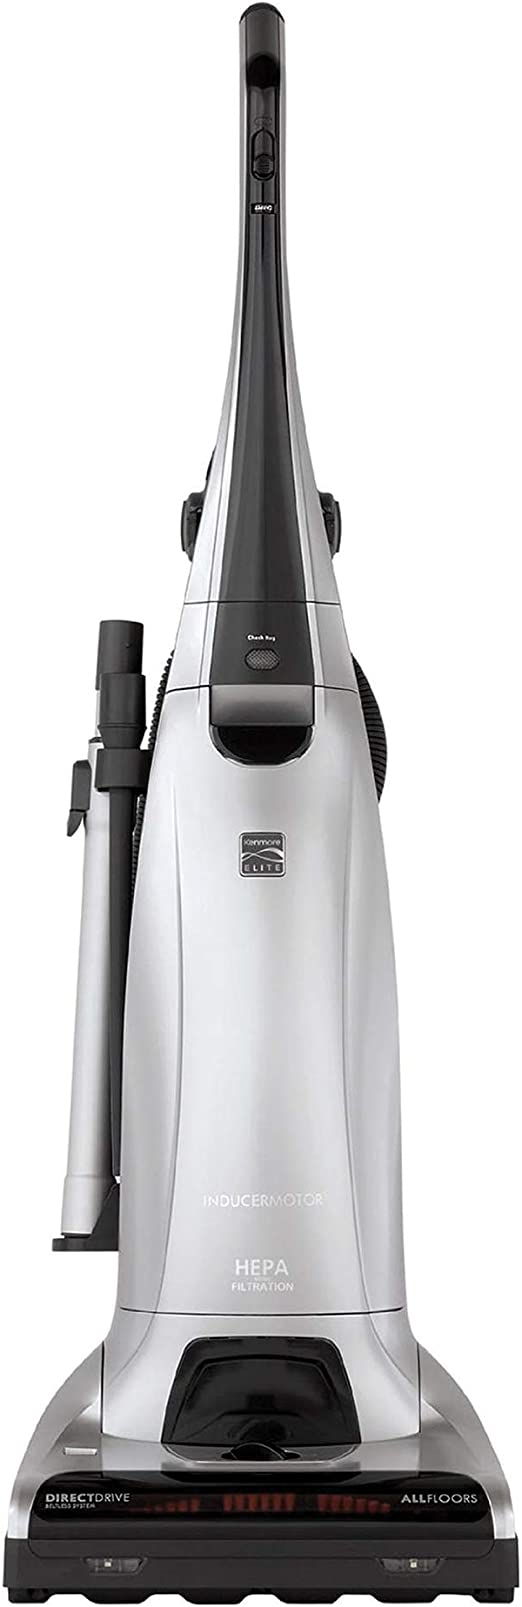 NEW Kenmore 31140 Upright Bagged Vacuum Cleaner with Pet Handimate